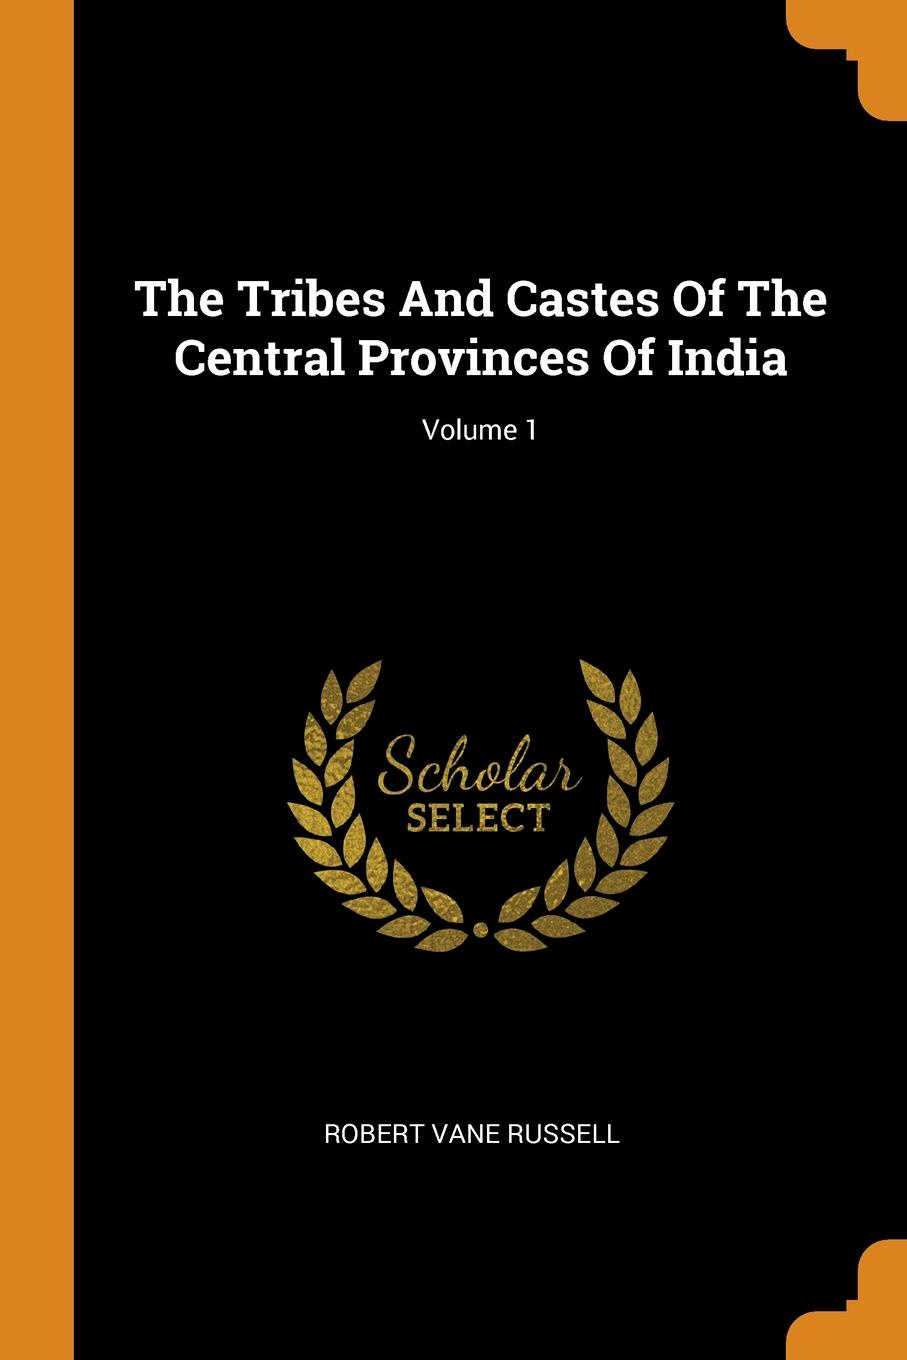 Robert Vane Russell The Tribes And Castes Of The Central Provinces Of India; Volume 1 robert vane russell the tribes and castes of the central provinces of india volume 3